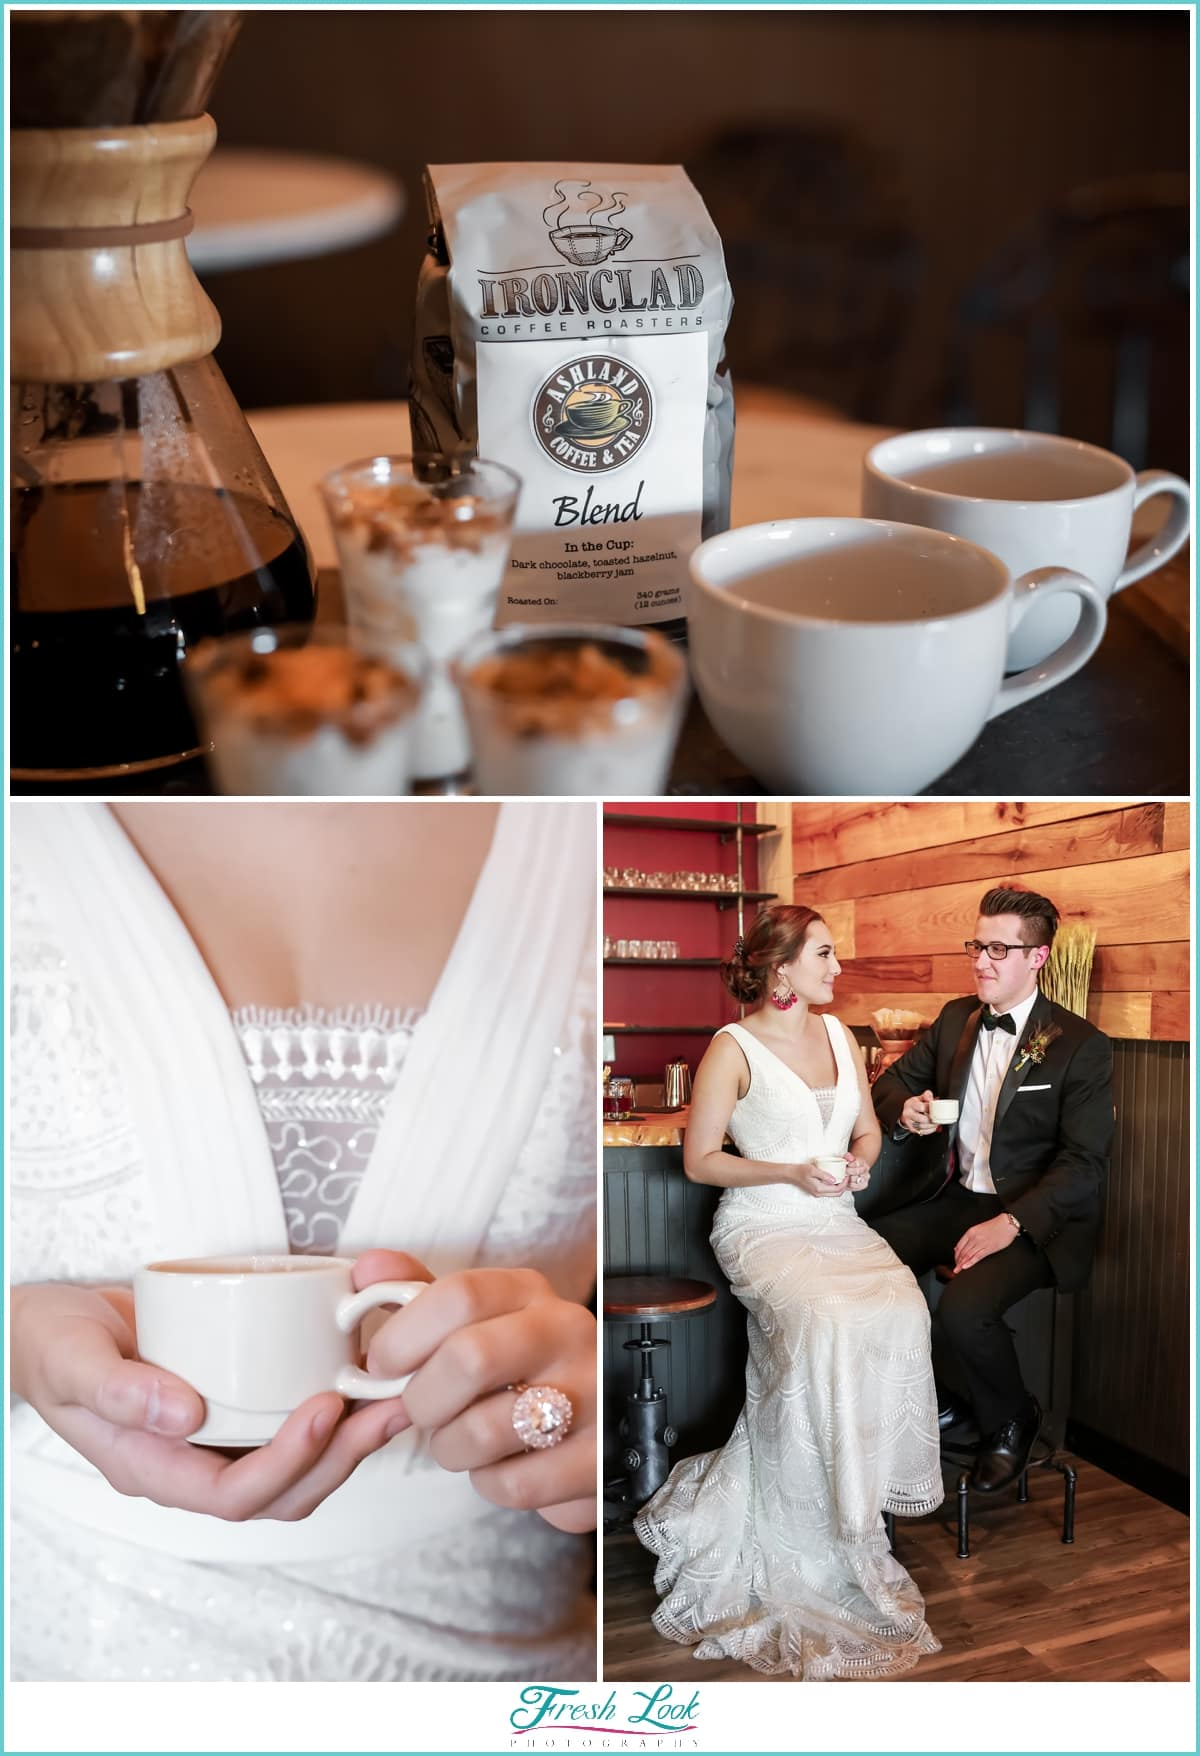 bride and groom coffee bar at wedding